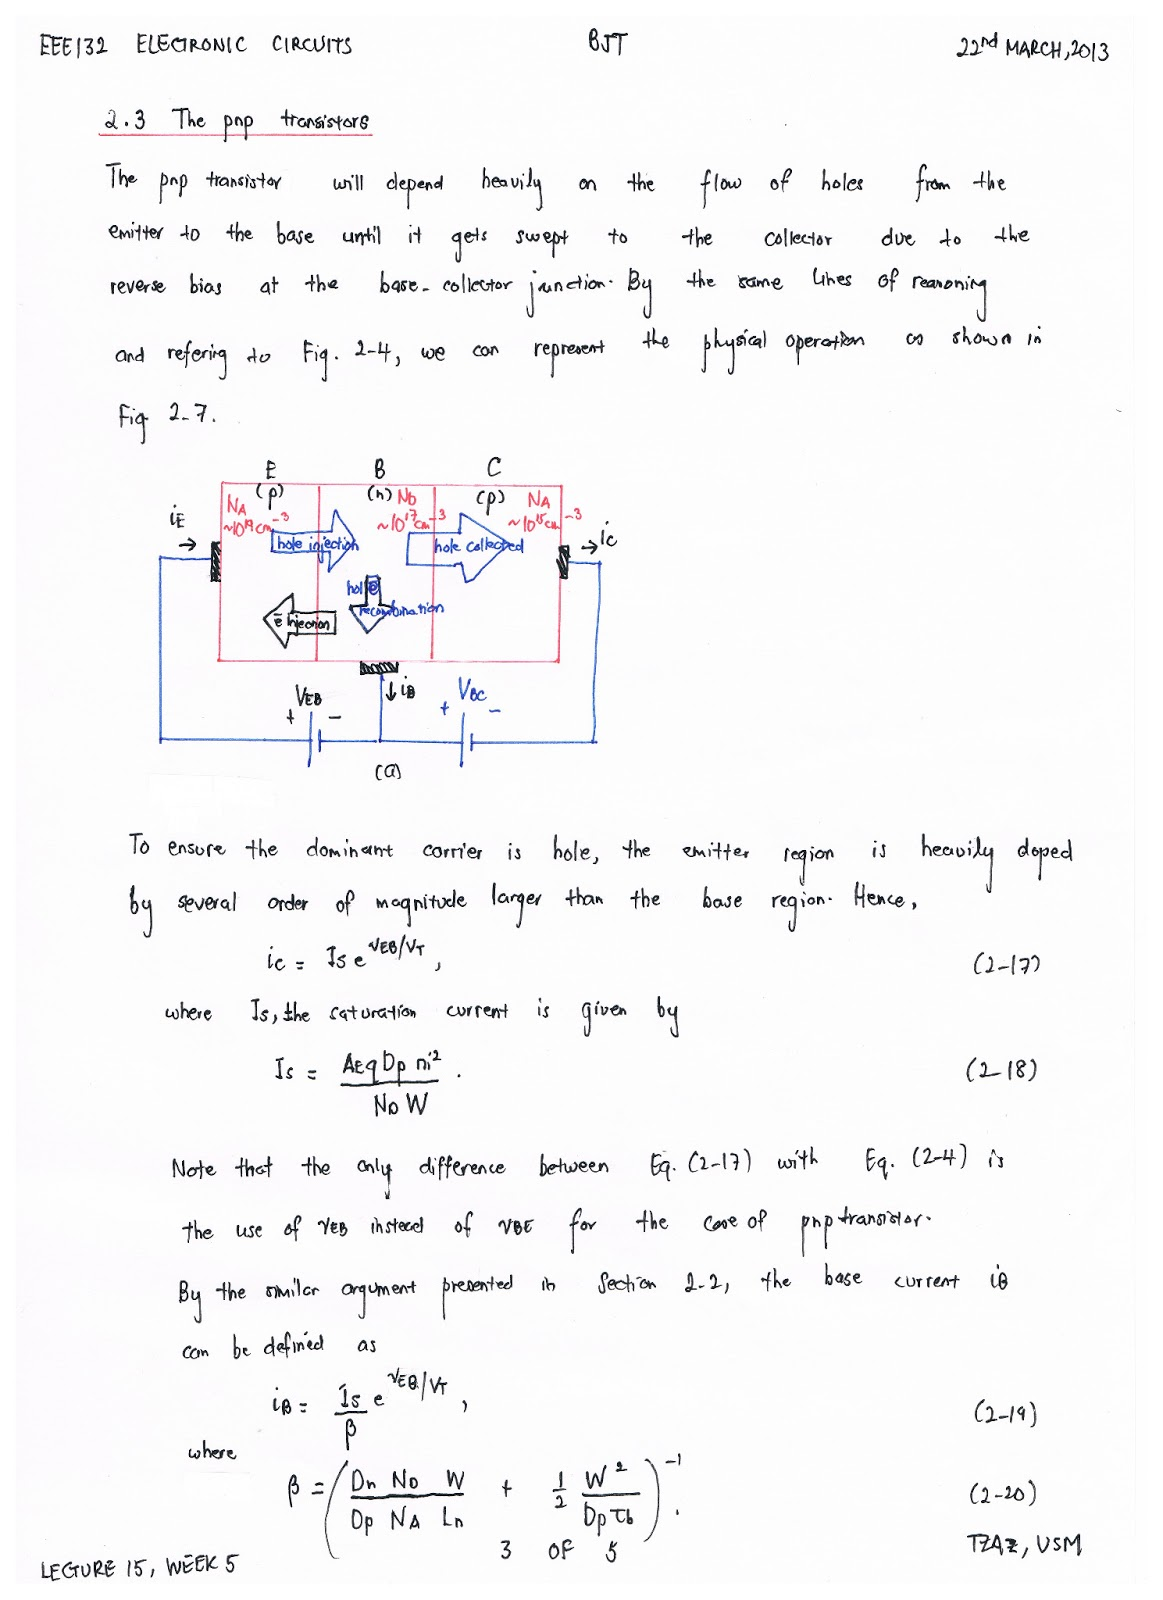 eee132 electronic circuits lecture 15 22nd march, 2013 (week 5) ( 3Electronic Circuit Notes #8